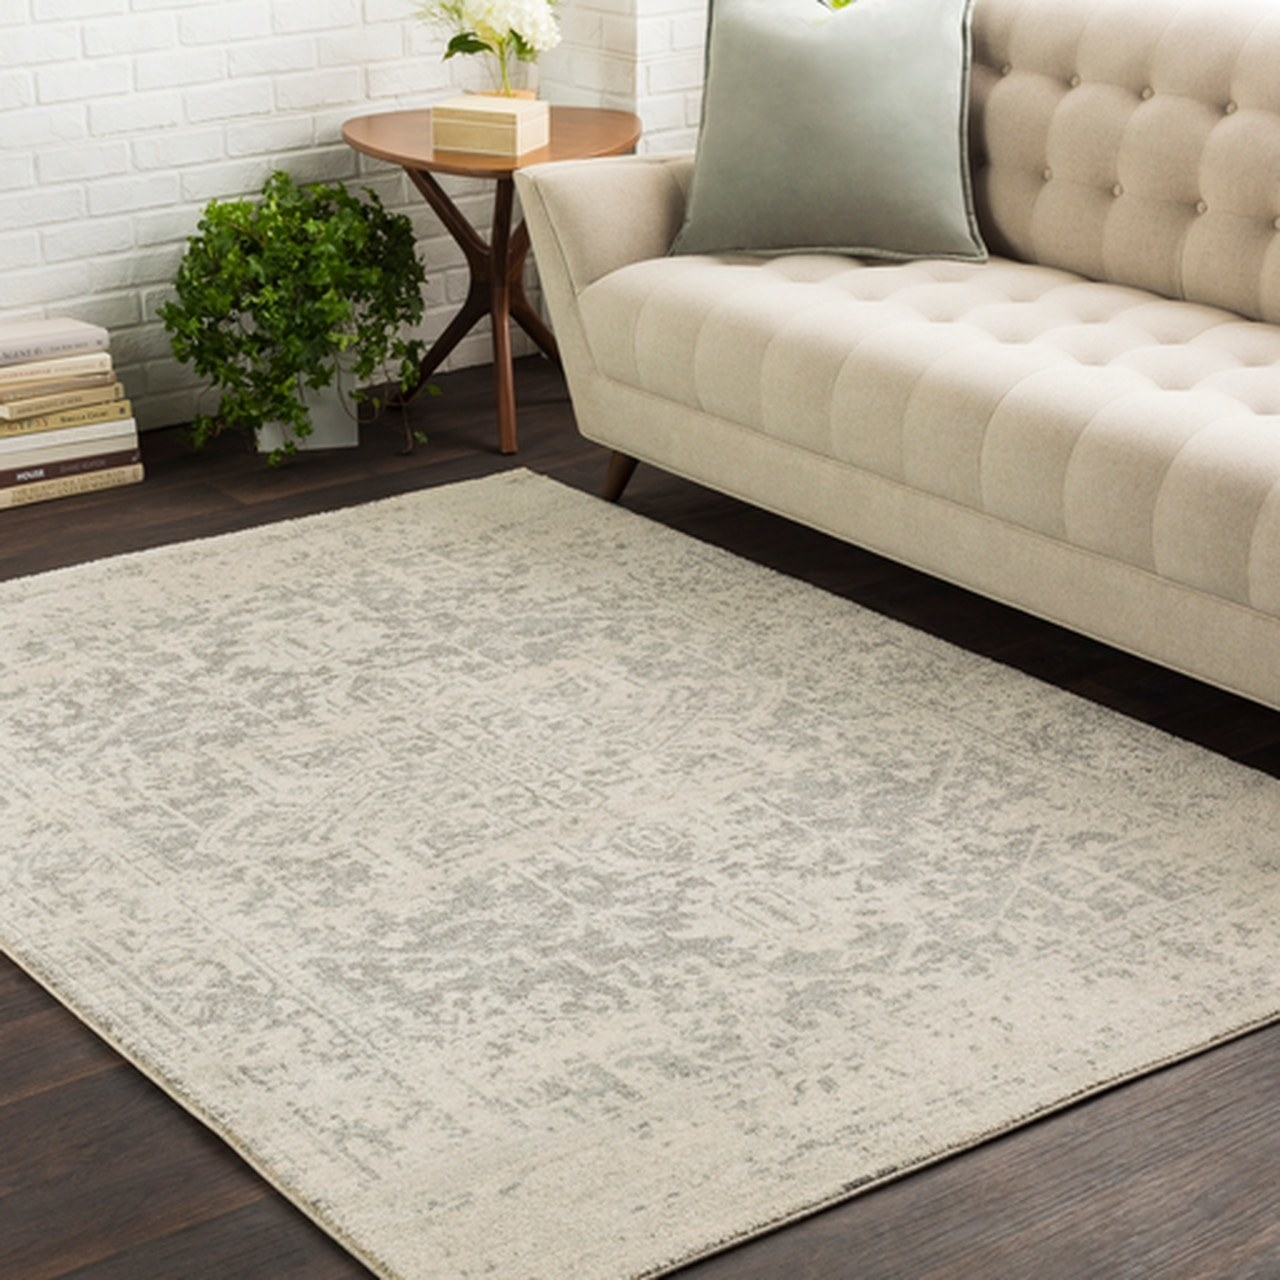 a vintage styled off white rug with a subtle gray pattern throughout